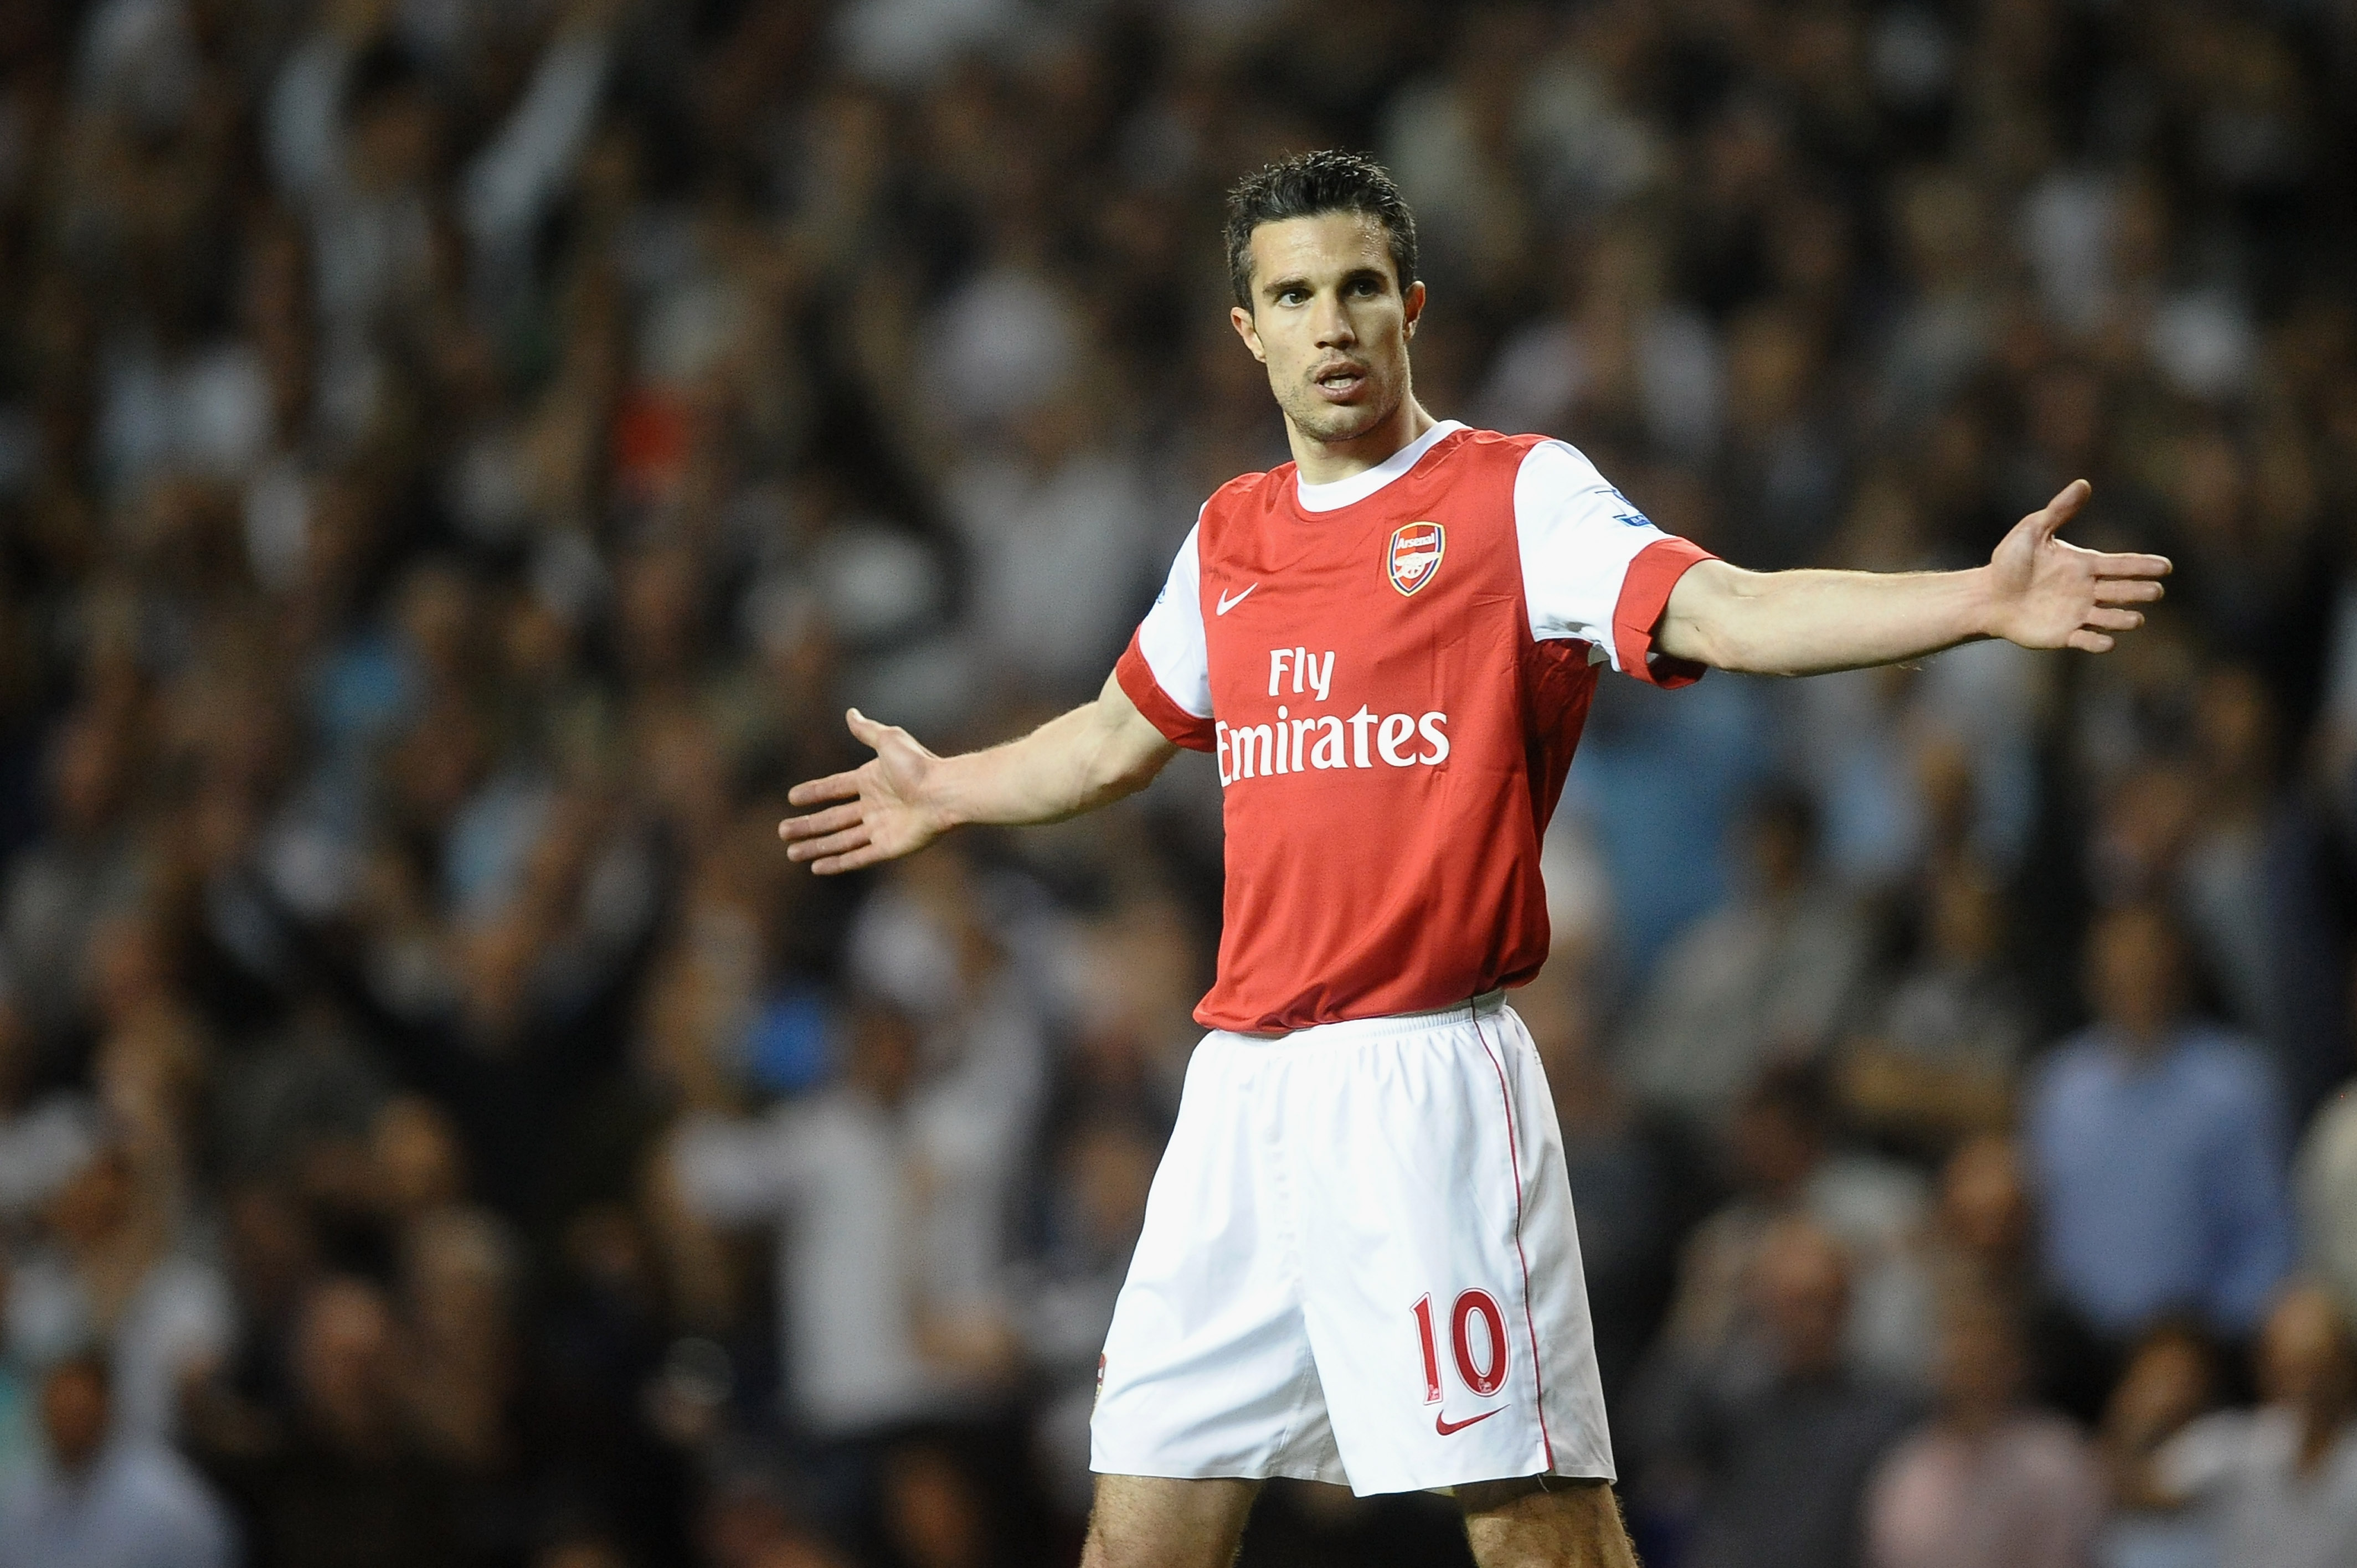 LONDON, ENGLAND - APRIL 20:  Robin van Persie of Arsenal reacts during the Barclays Premier League match between Tottenham Hotspur and Arsenal at White Hart Lane on April 20, 2011 in London, England.  (Photo by Laurence Griffiths/Getty Images)